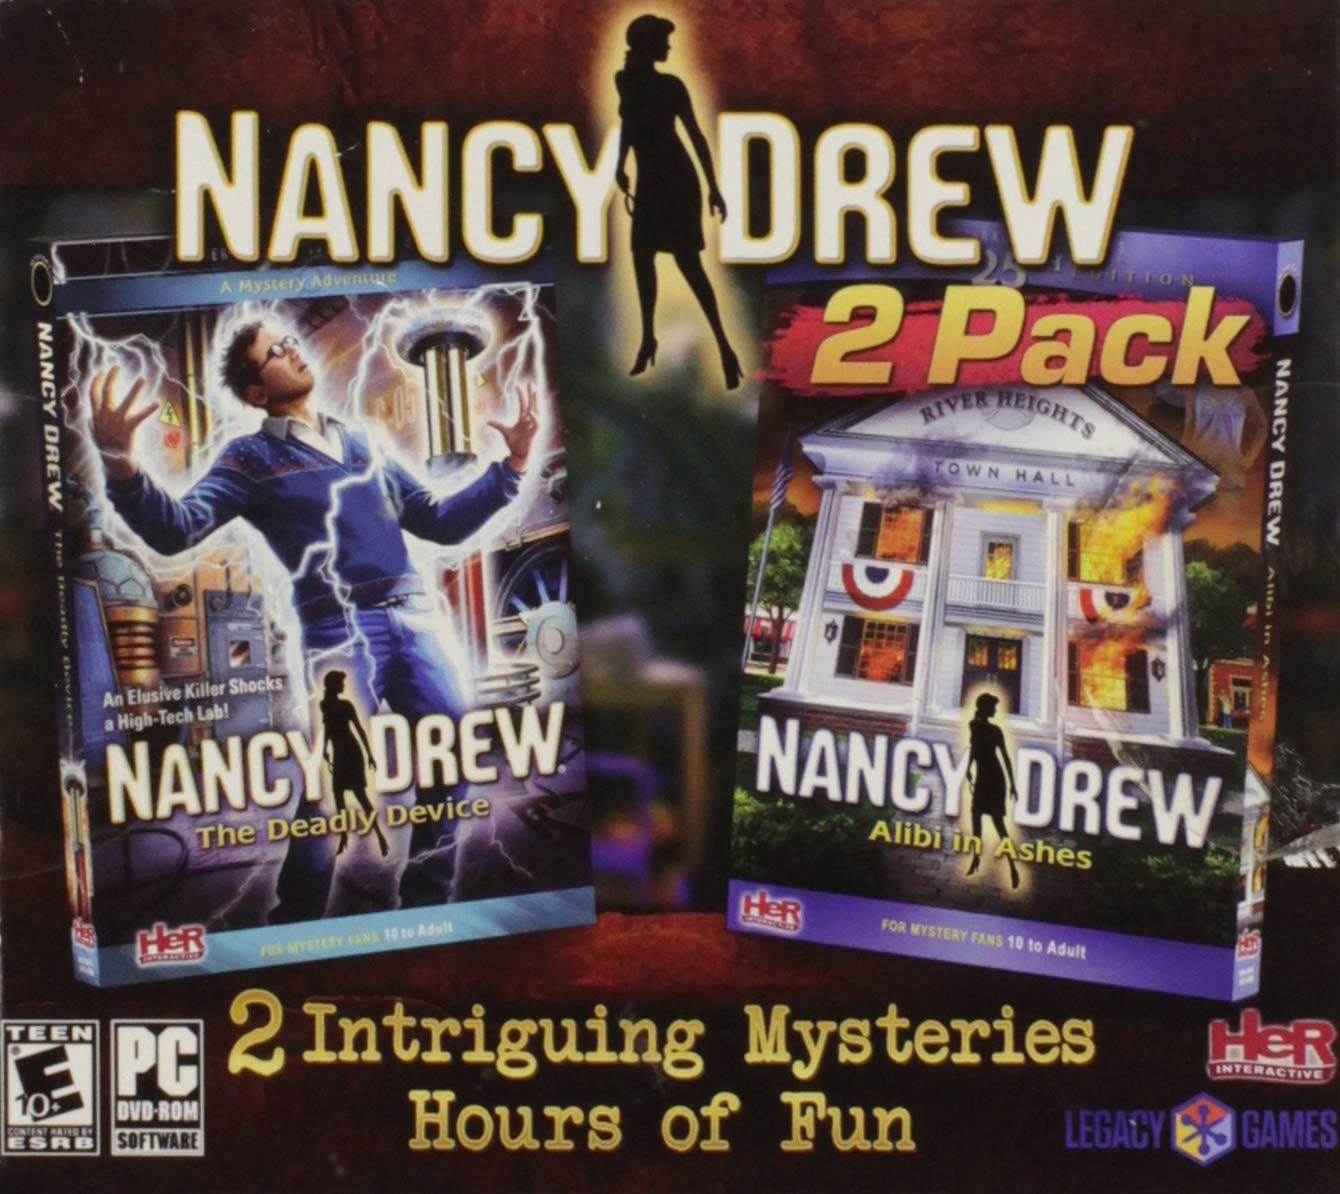 Nancy Drew - Today's only Alibi in Virginia Beach Mall Ashes 2-Pack Deadly Device PC-DVD The